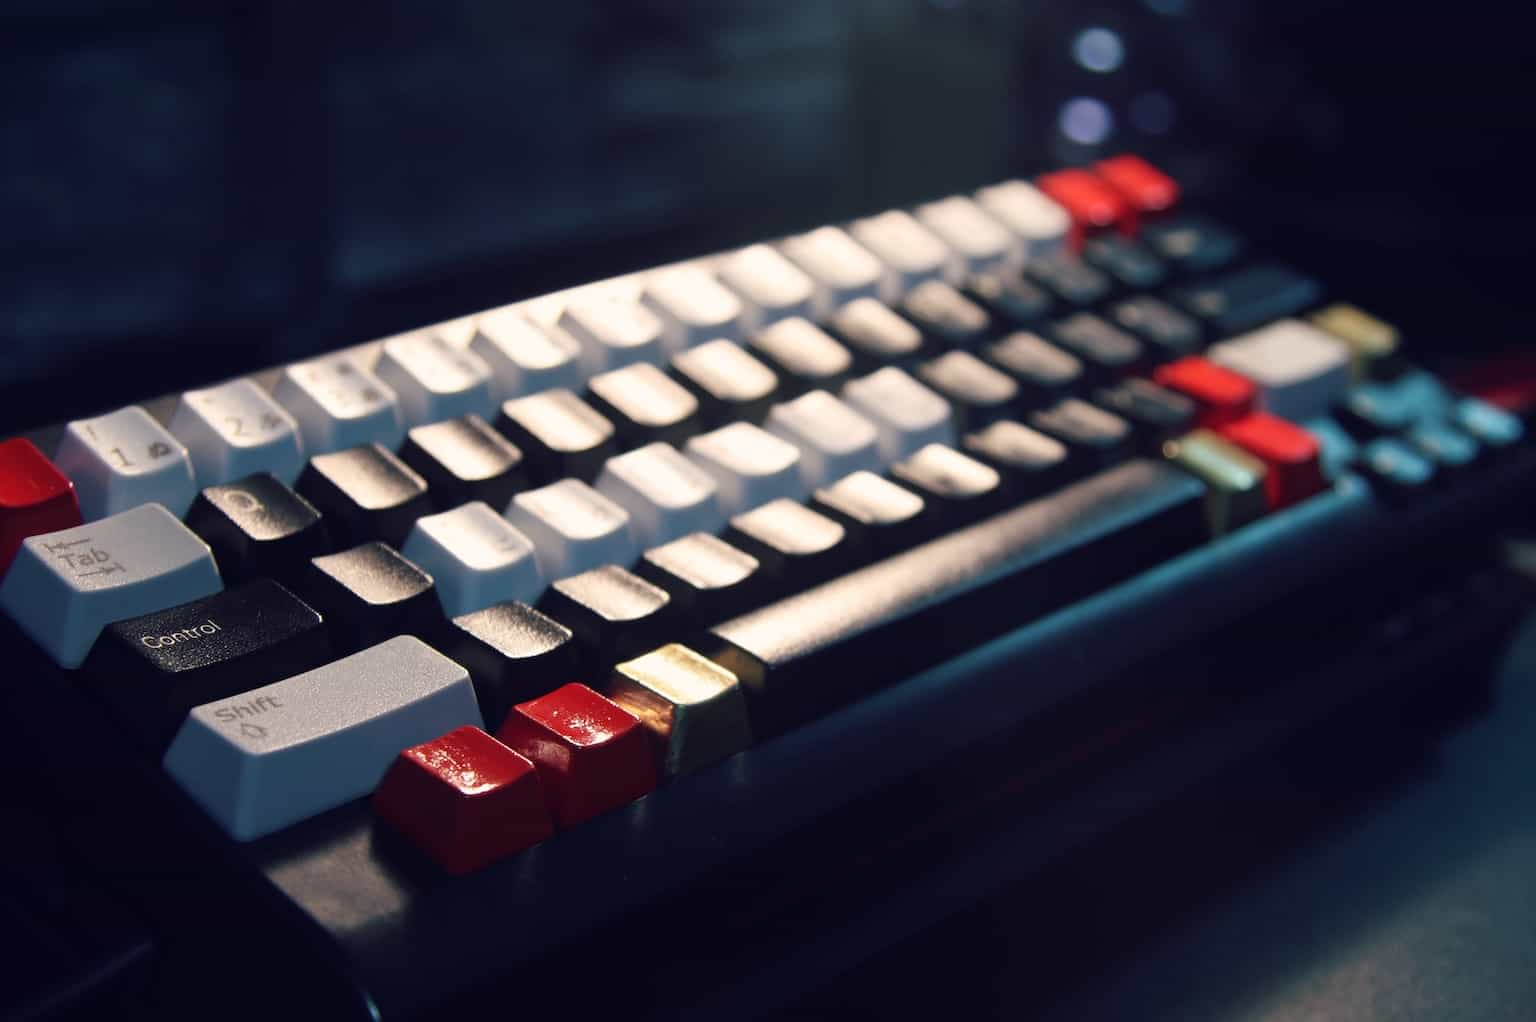 Keyboard photo by NihoNorway graphy on Unsplash